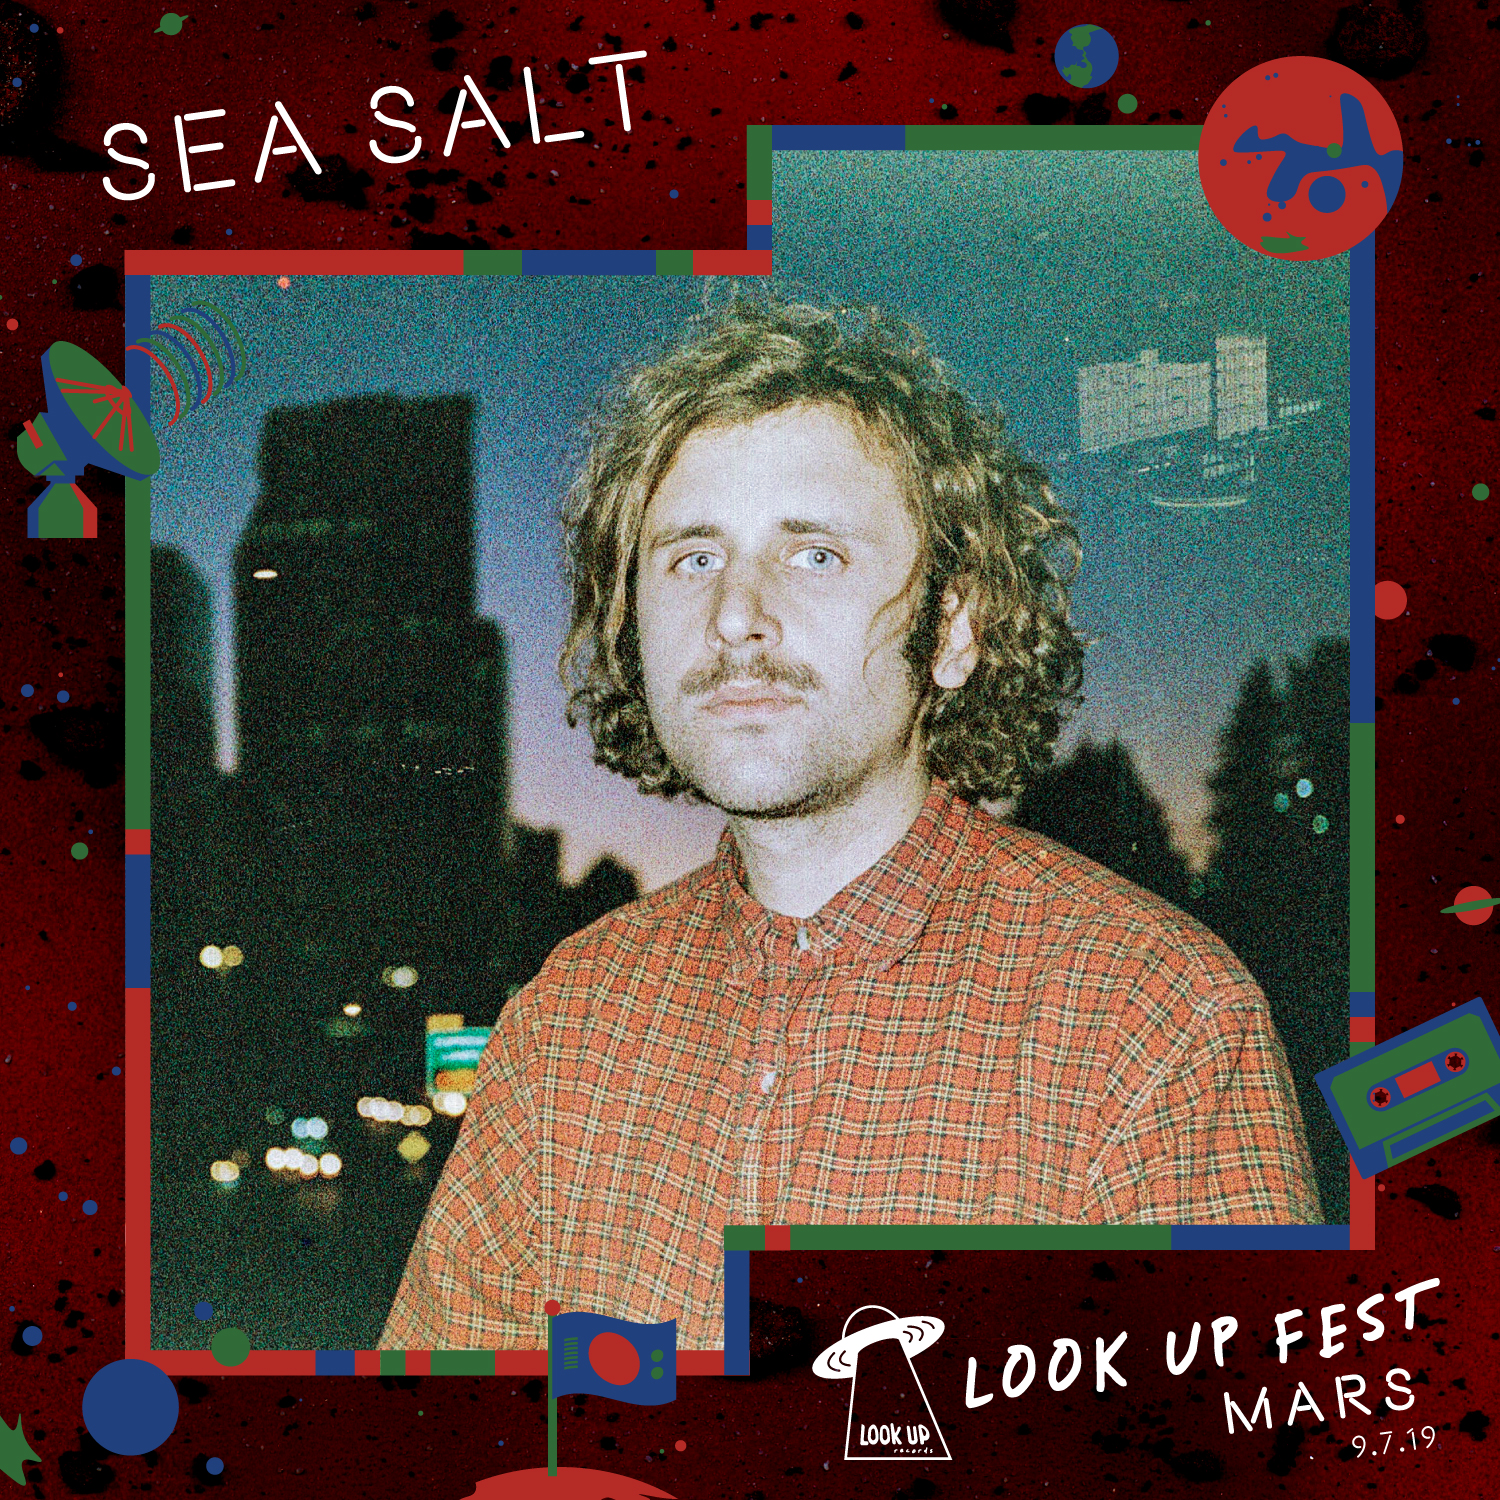 Sea Salt - Catch Sea Salt at Look Up Fest: Mars on 9/7!